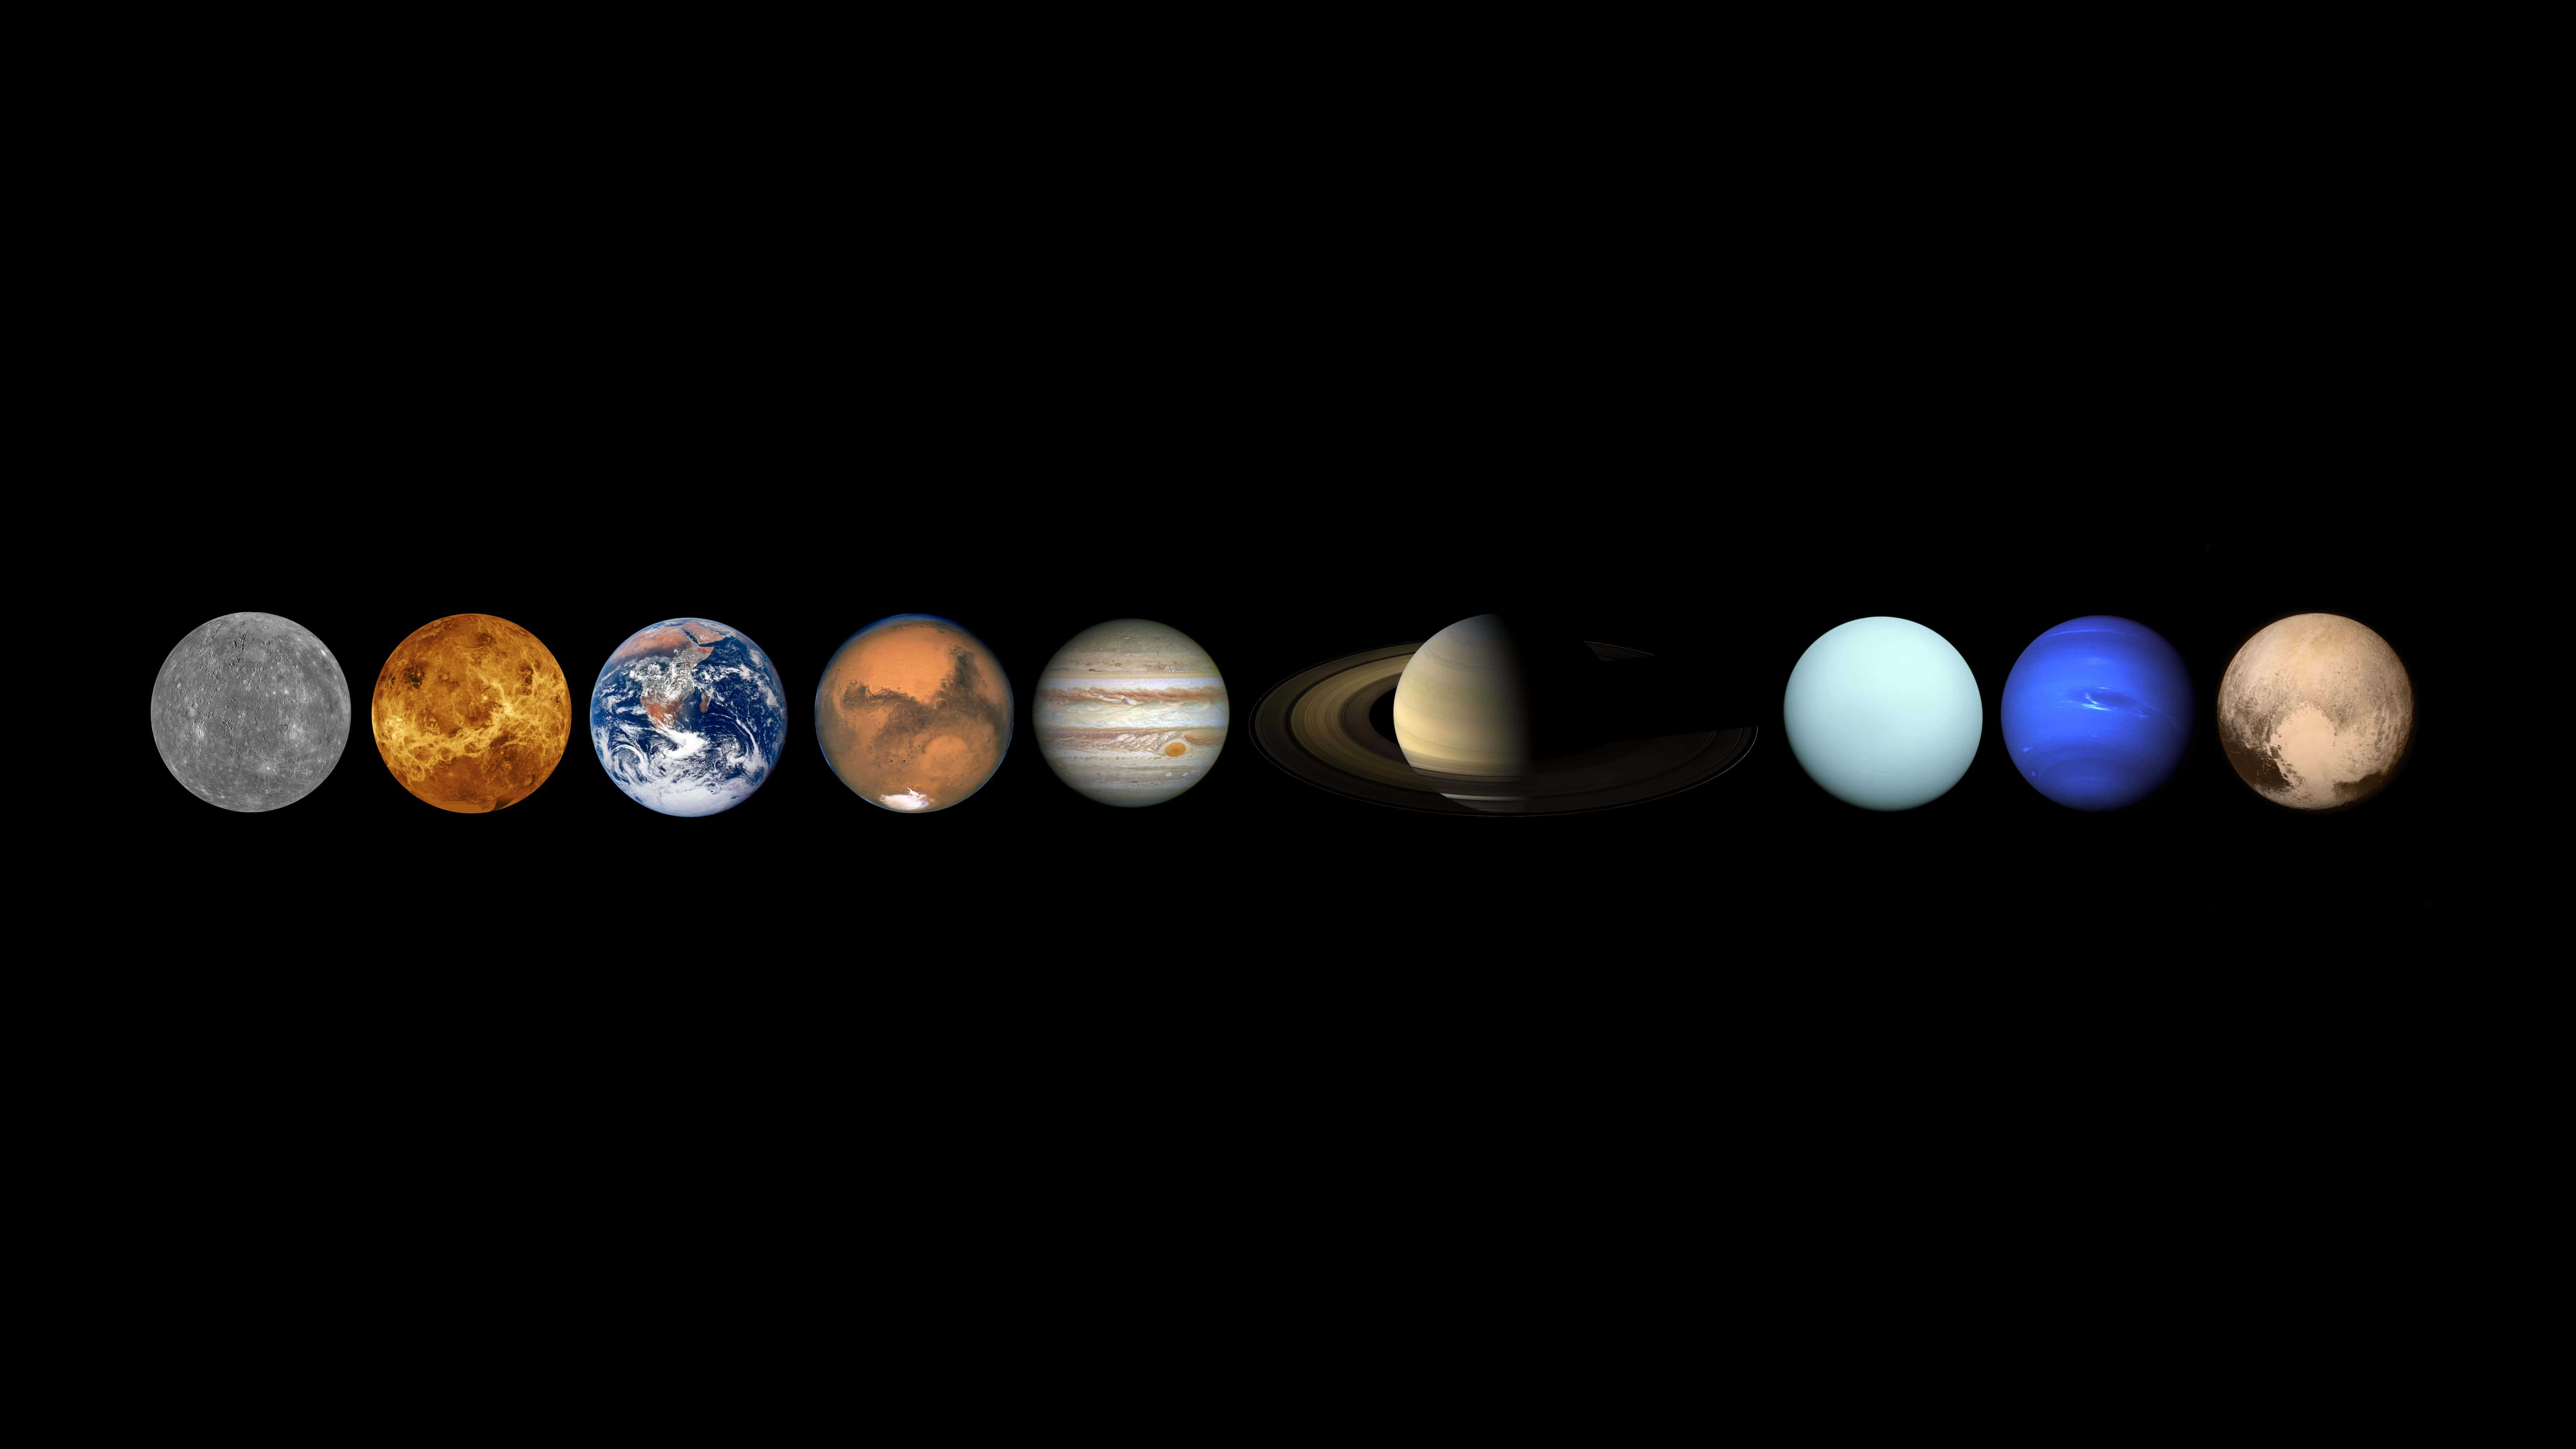 7680x4320 Planets In Our Solar System UHD 8K Wallpaper   Pixelz